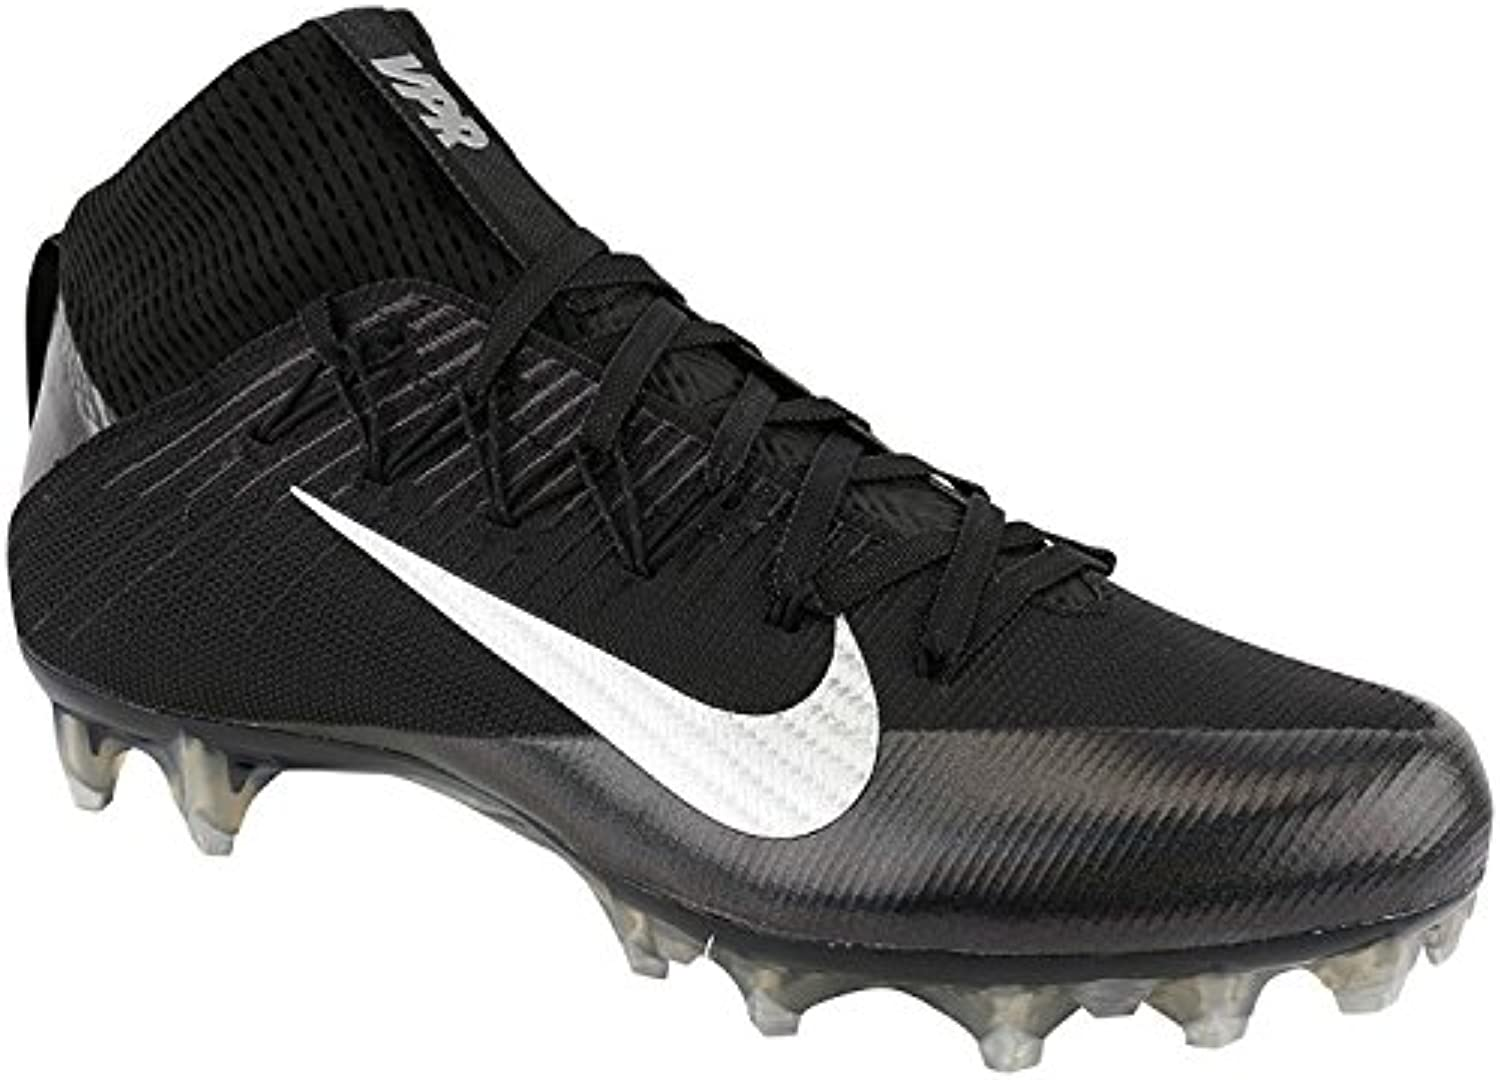 Nike Men's Vapor Untouchable 2 Football Cleat  Schwarz  44.5 DM EU/9.5 DM UK